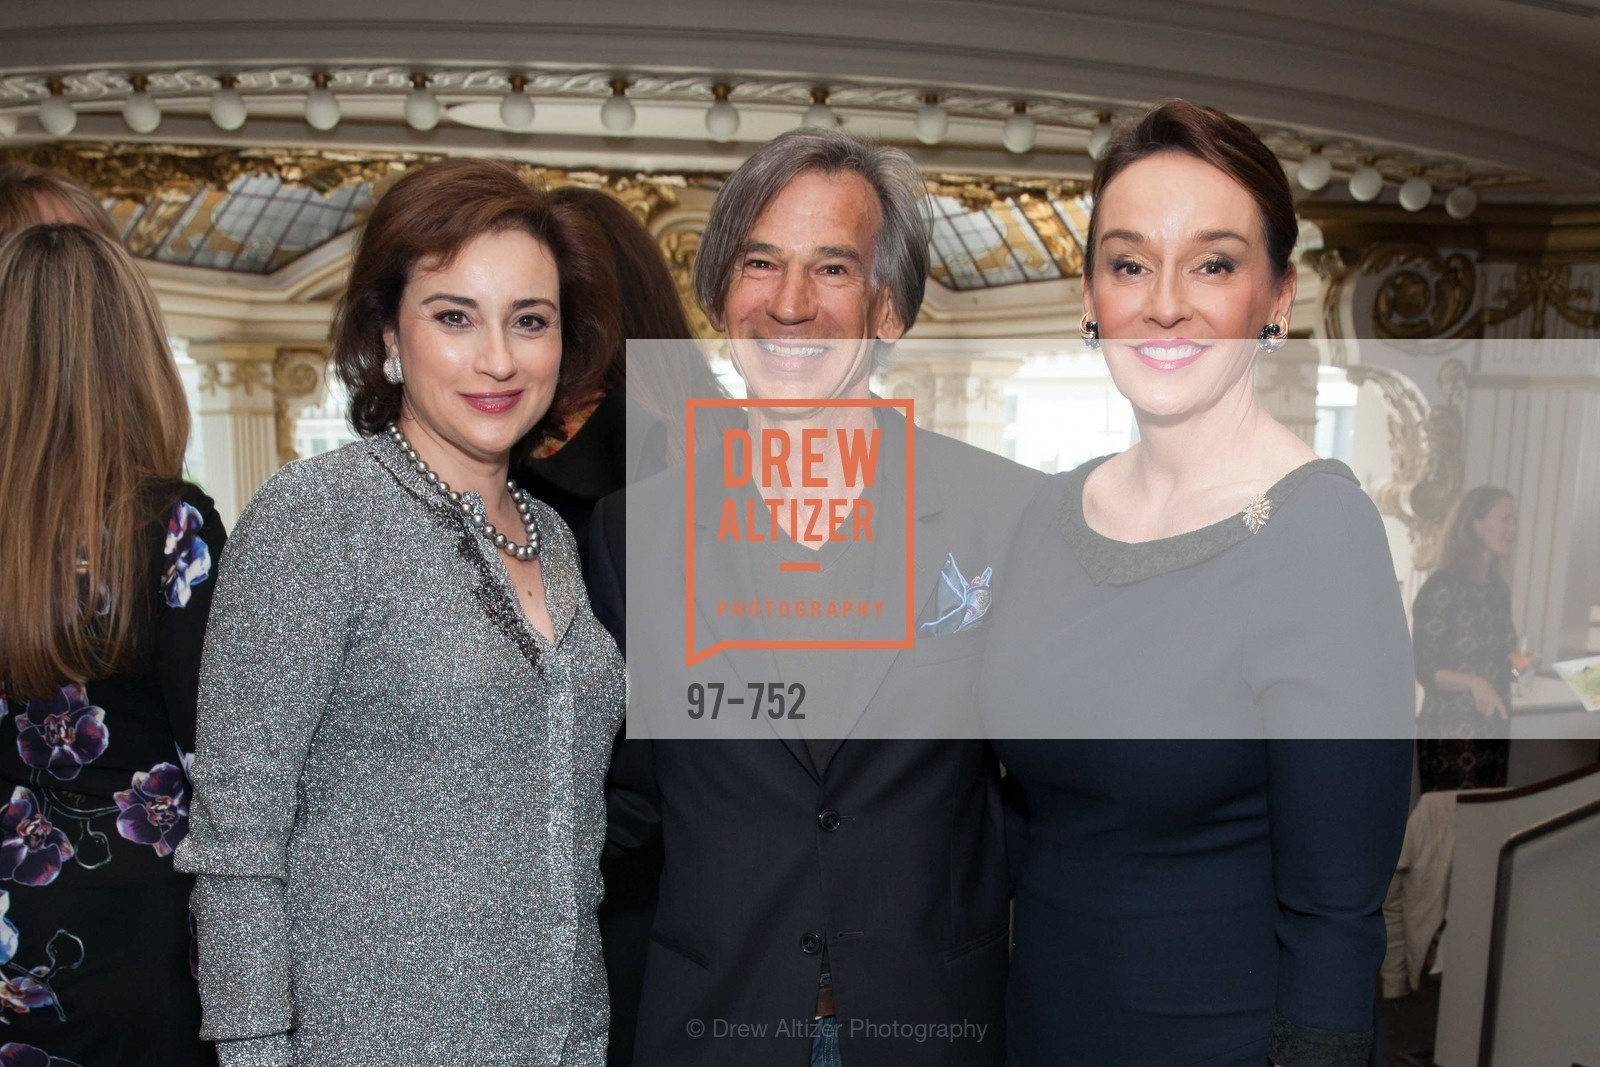 Dolly Chammas, Dan Dieguez, Elisa Stephens, Electric Fashion Book Signing with Christine Suppes & Ken Downing at THE ROTUNDA, NEIMAN MARCUS, US, May 27th, 2015,Drew Altizer, Drew Altizer Photography, full-service agency, private events, San Francisco photographer, photographer california